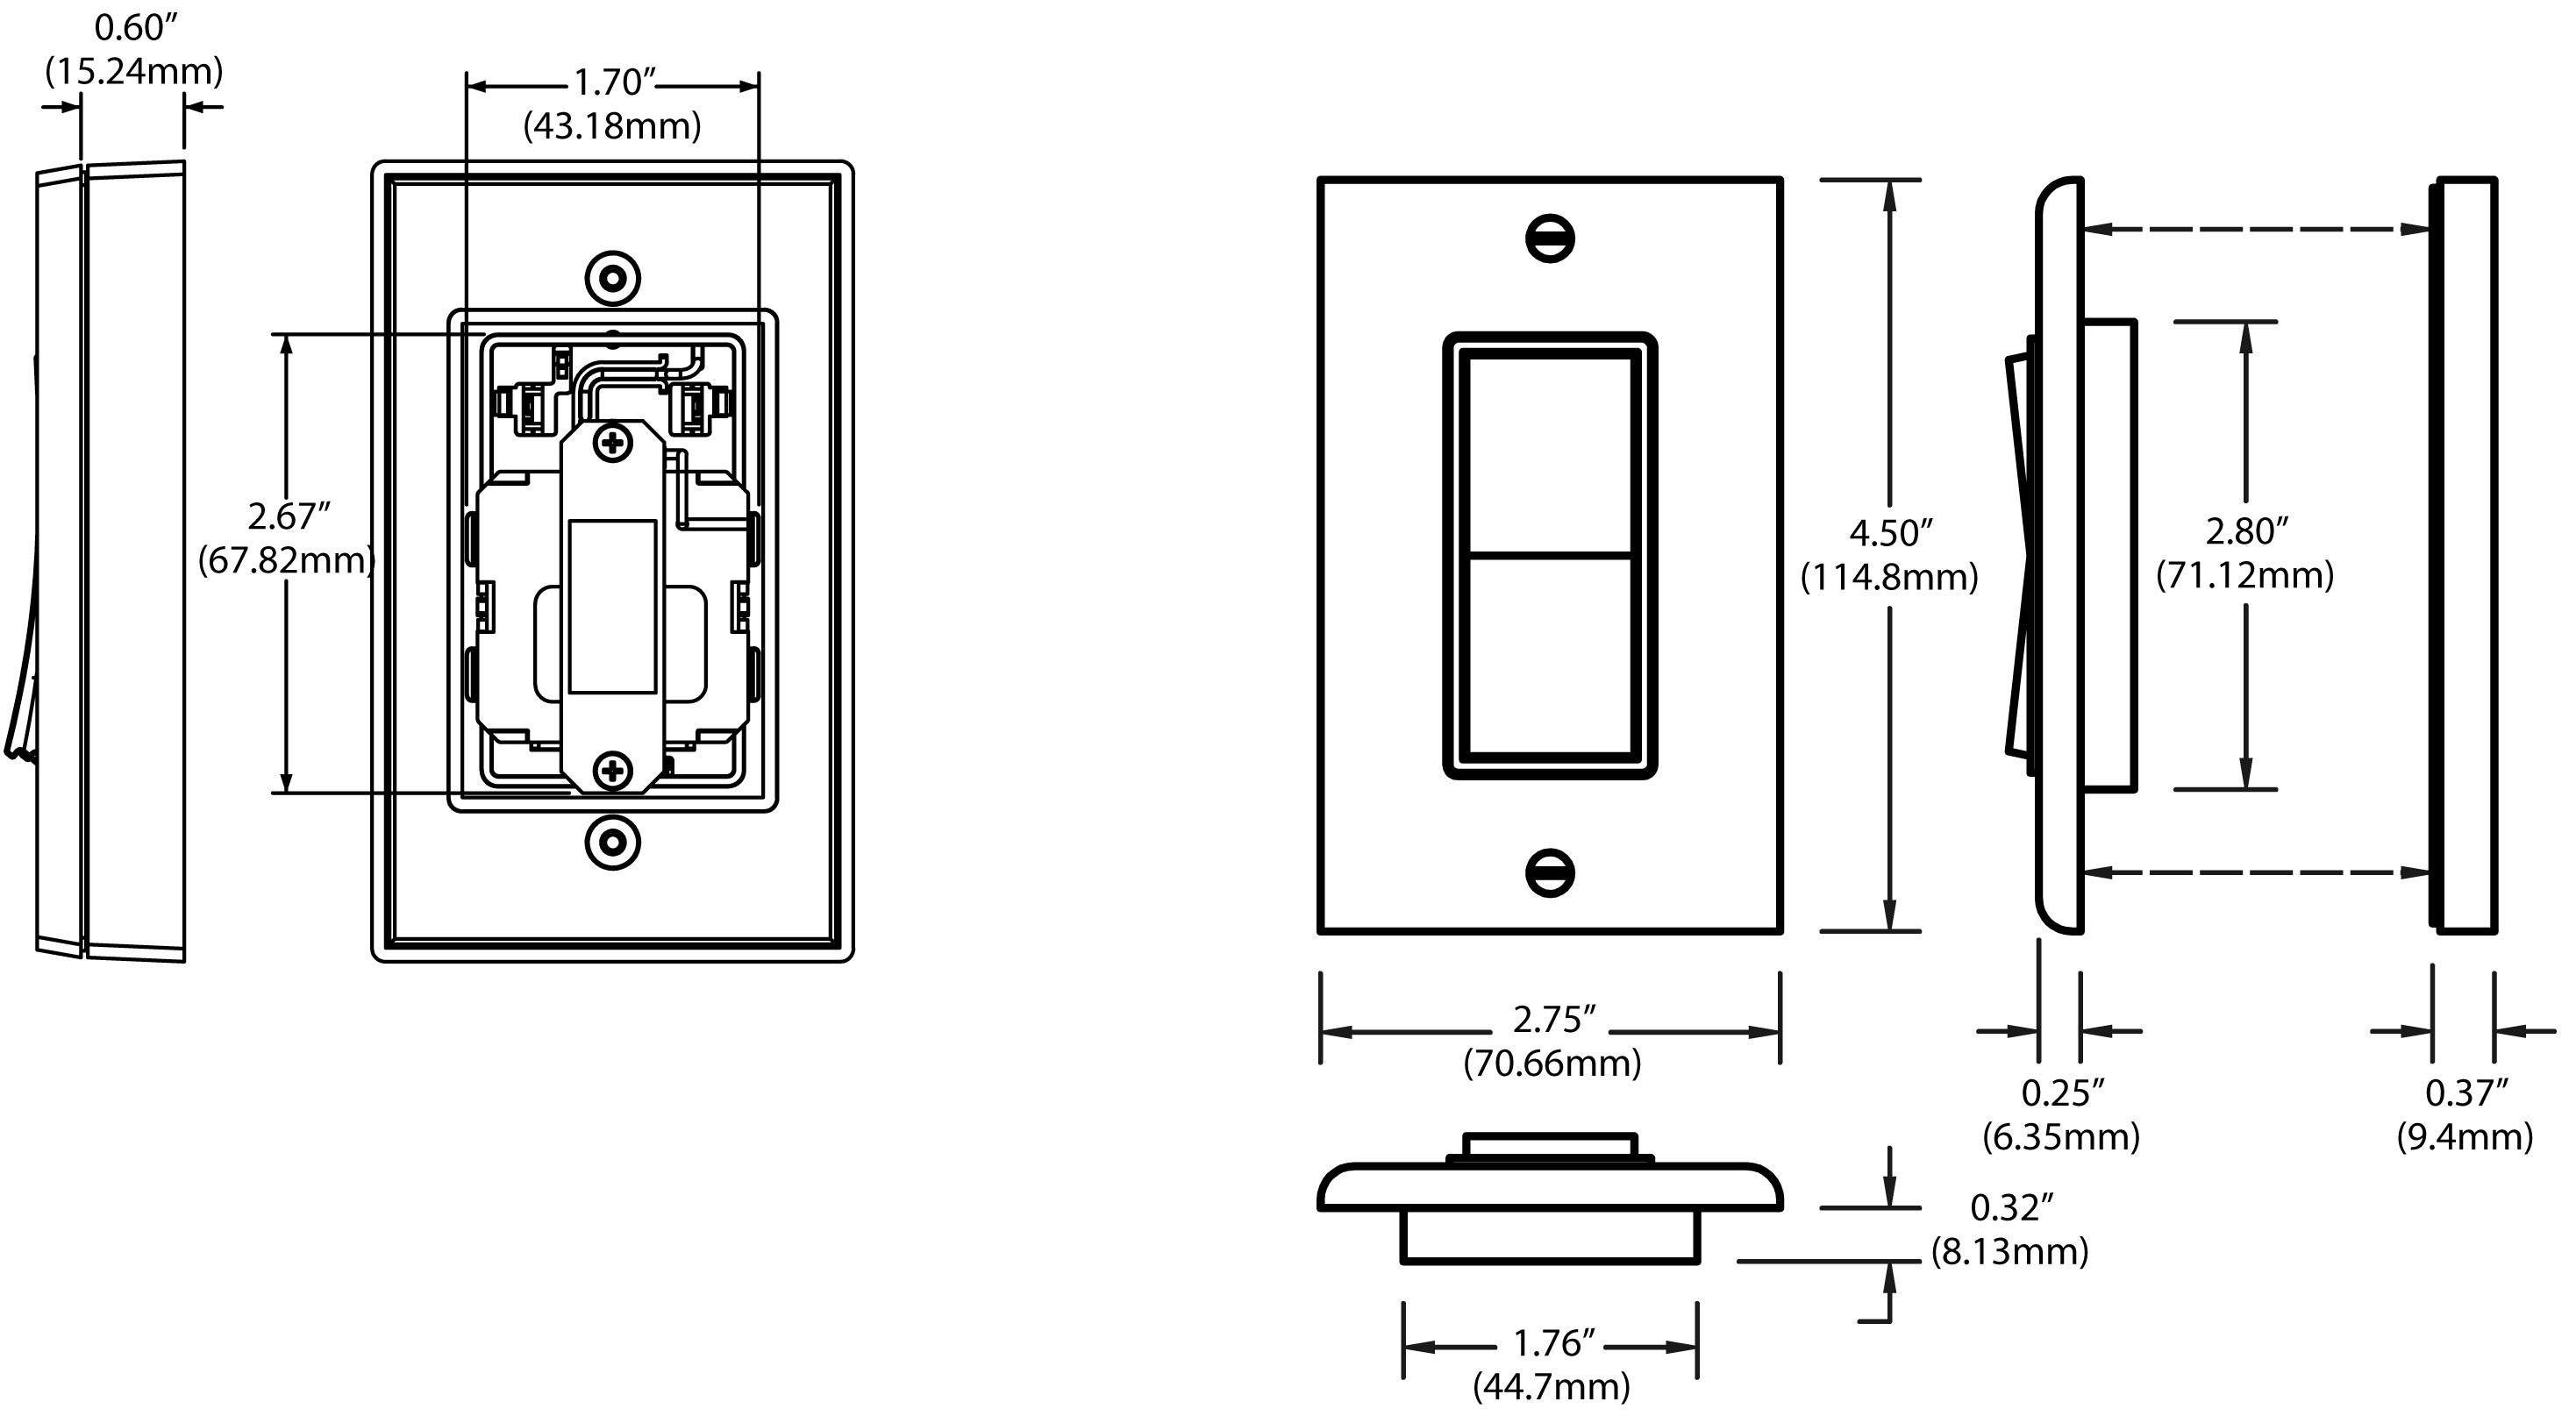 BottomILarge._V390024919_ leviton wss0s p0w wireless self powered remote switch, white leviton light switch wiring diagram at nearapp.co